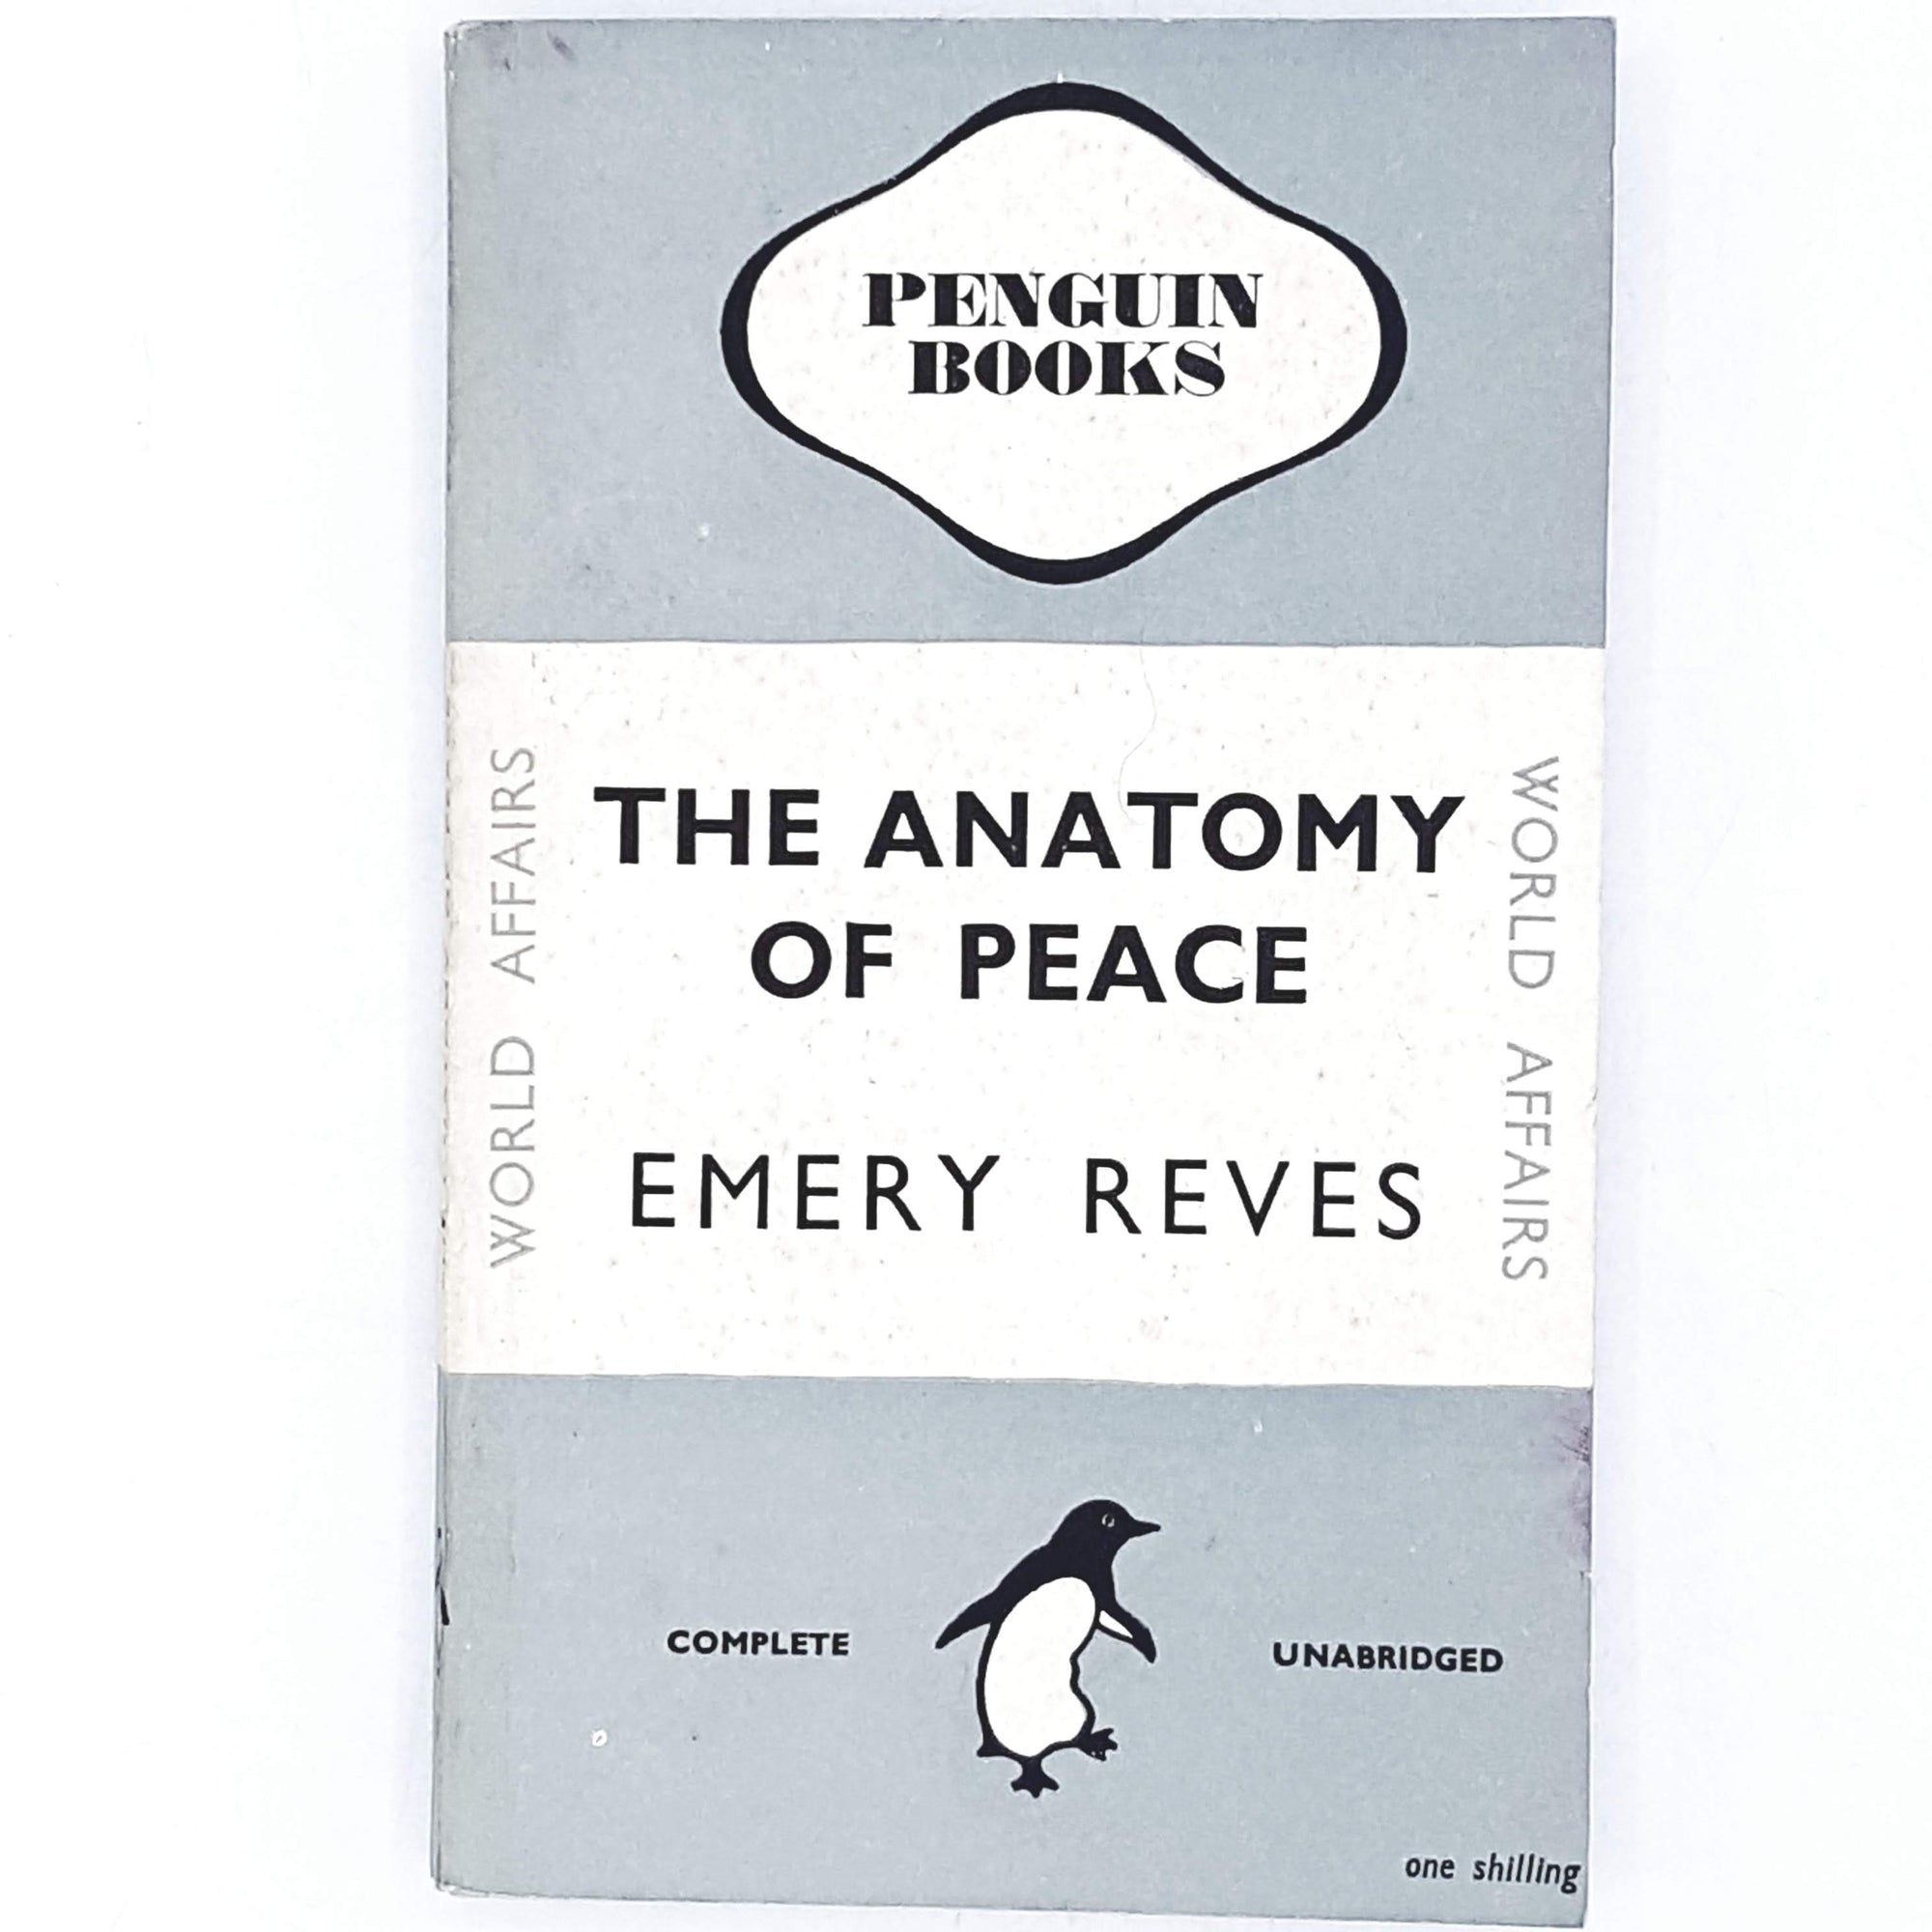 grey-history-vintage-penguin-country-house-library